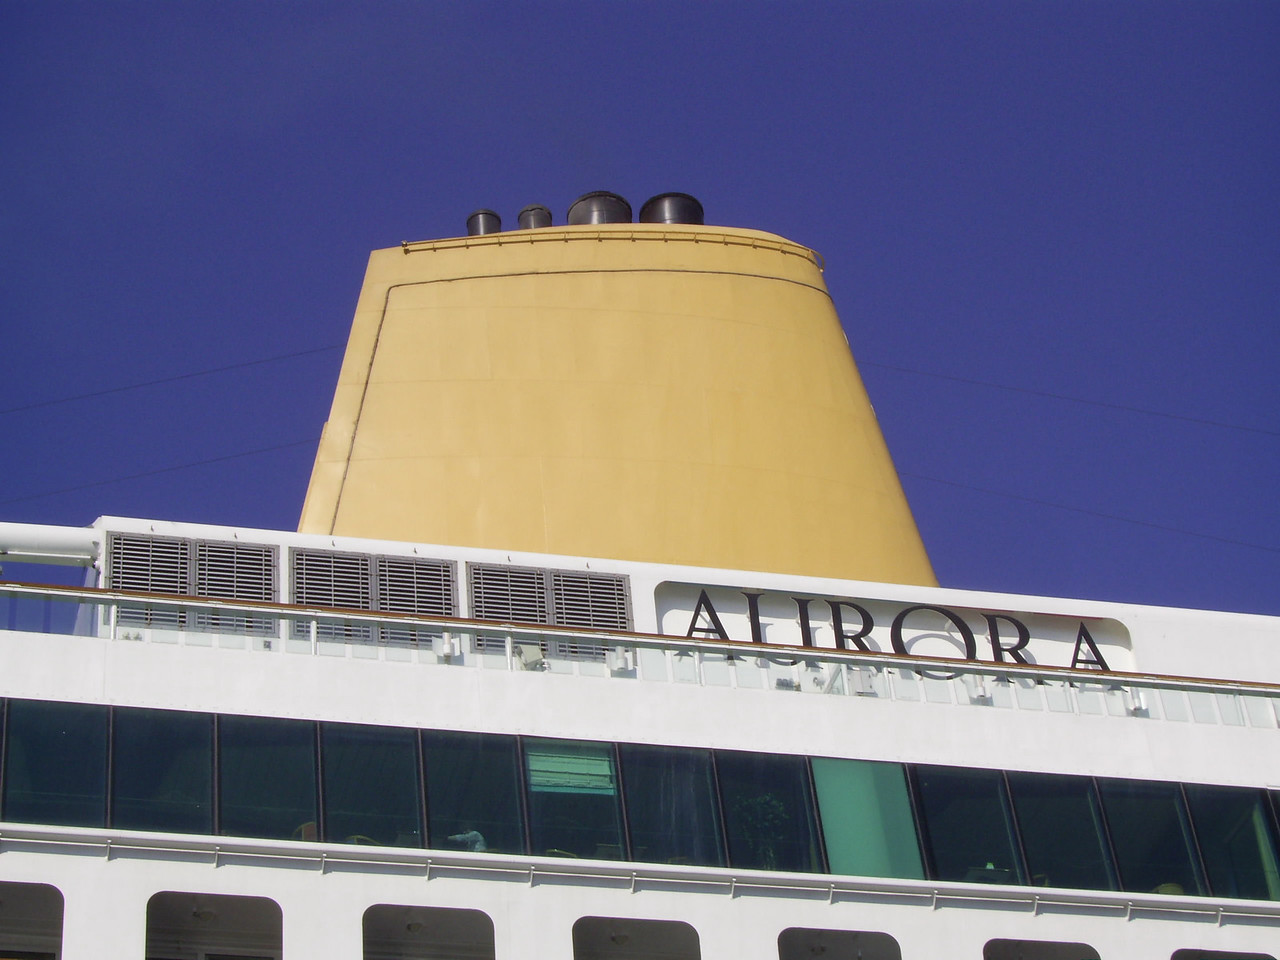 M/S AURORA : the funnel.